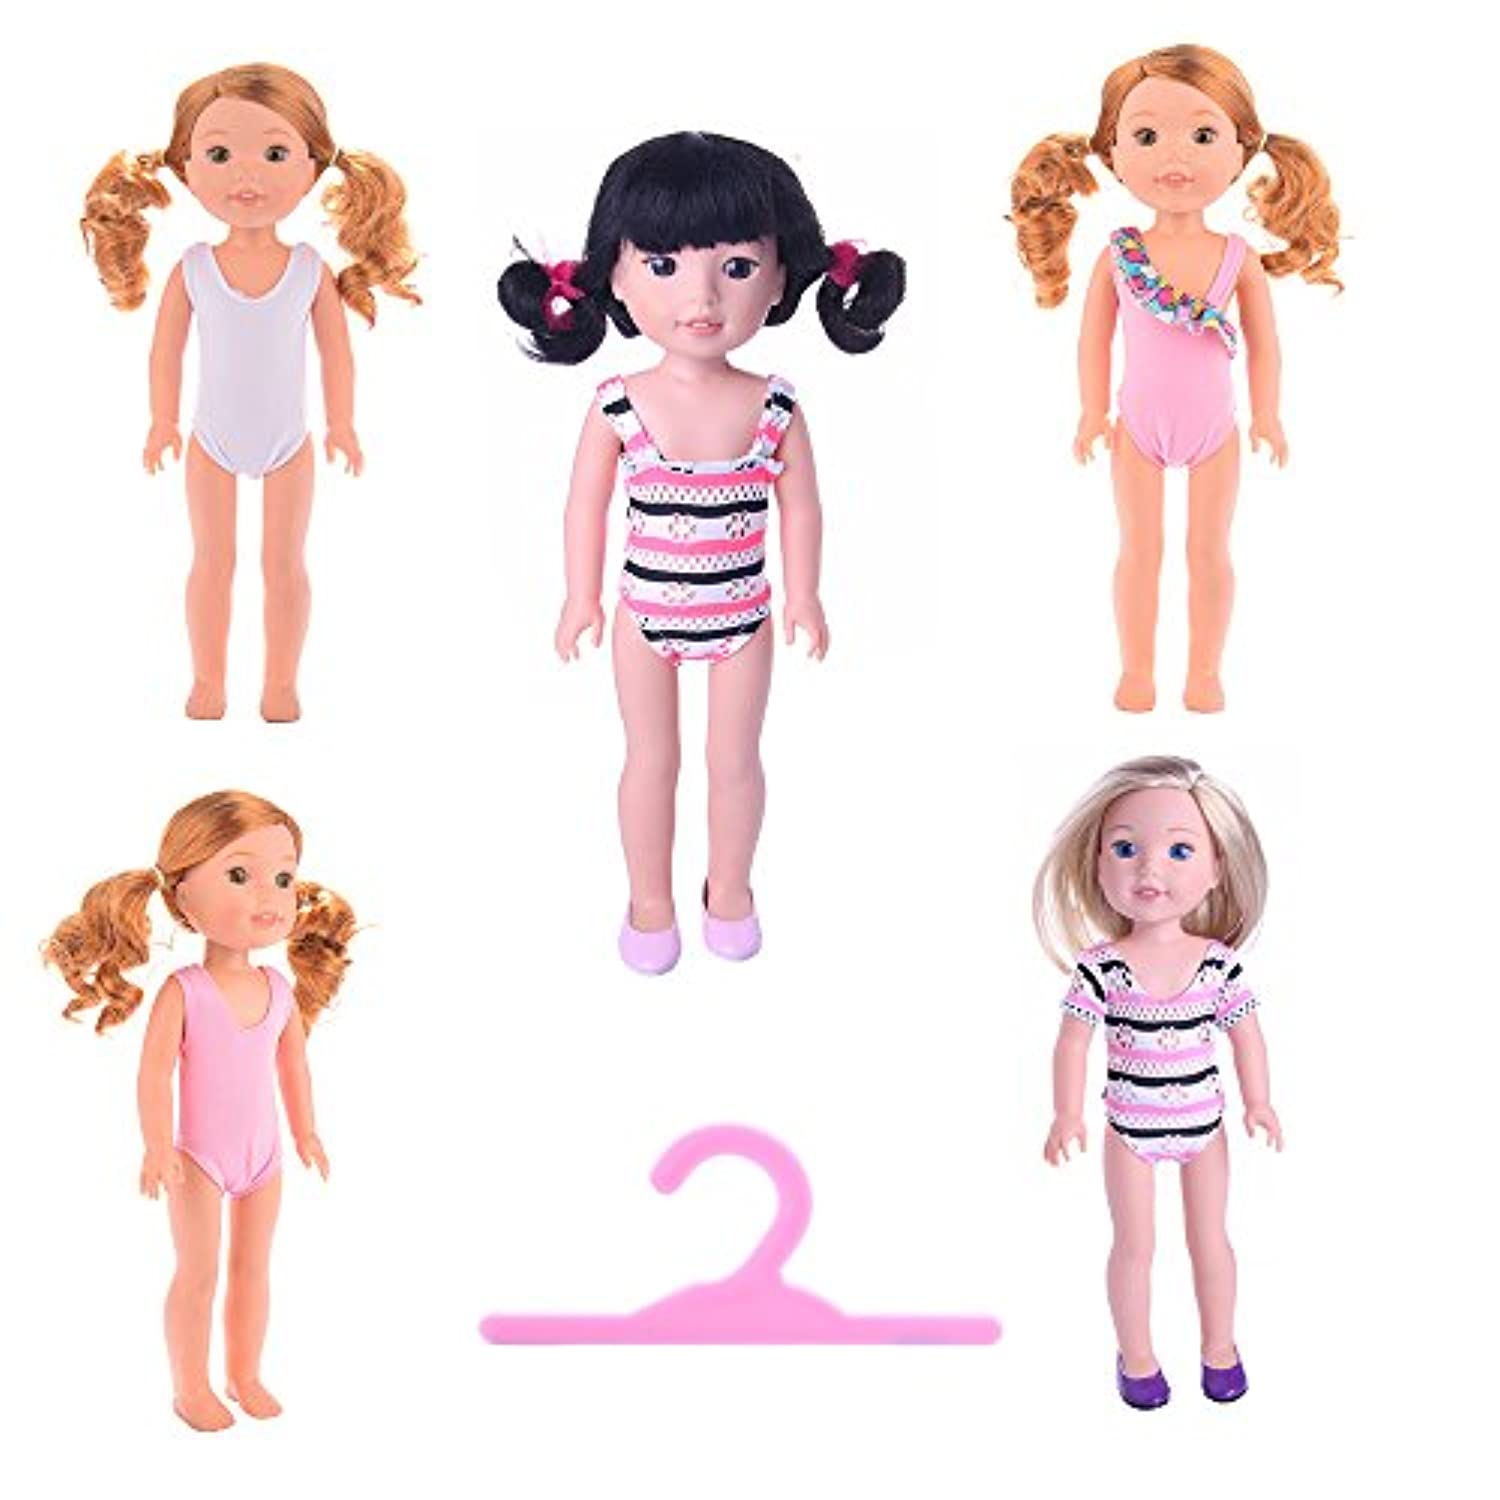 MSDS Doll Clothes for American Girl Dolls Swimsuit:- 5set for 14.5 inch Wellie Wisher Dolls